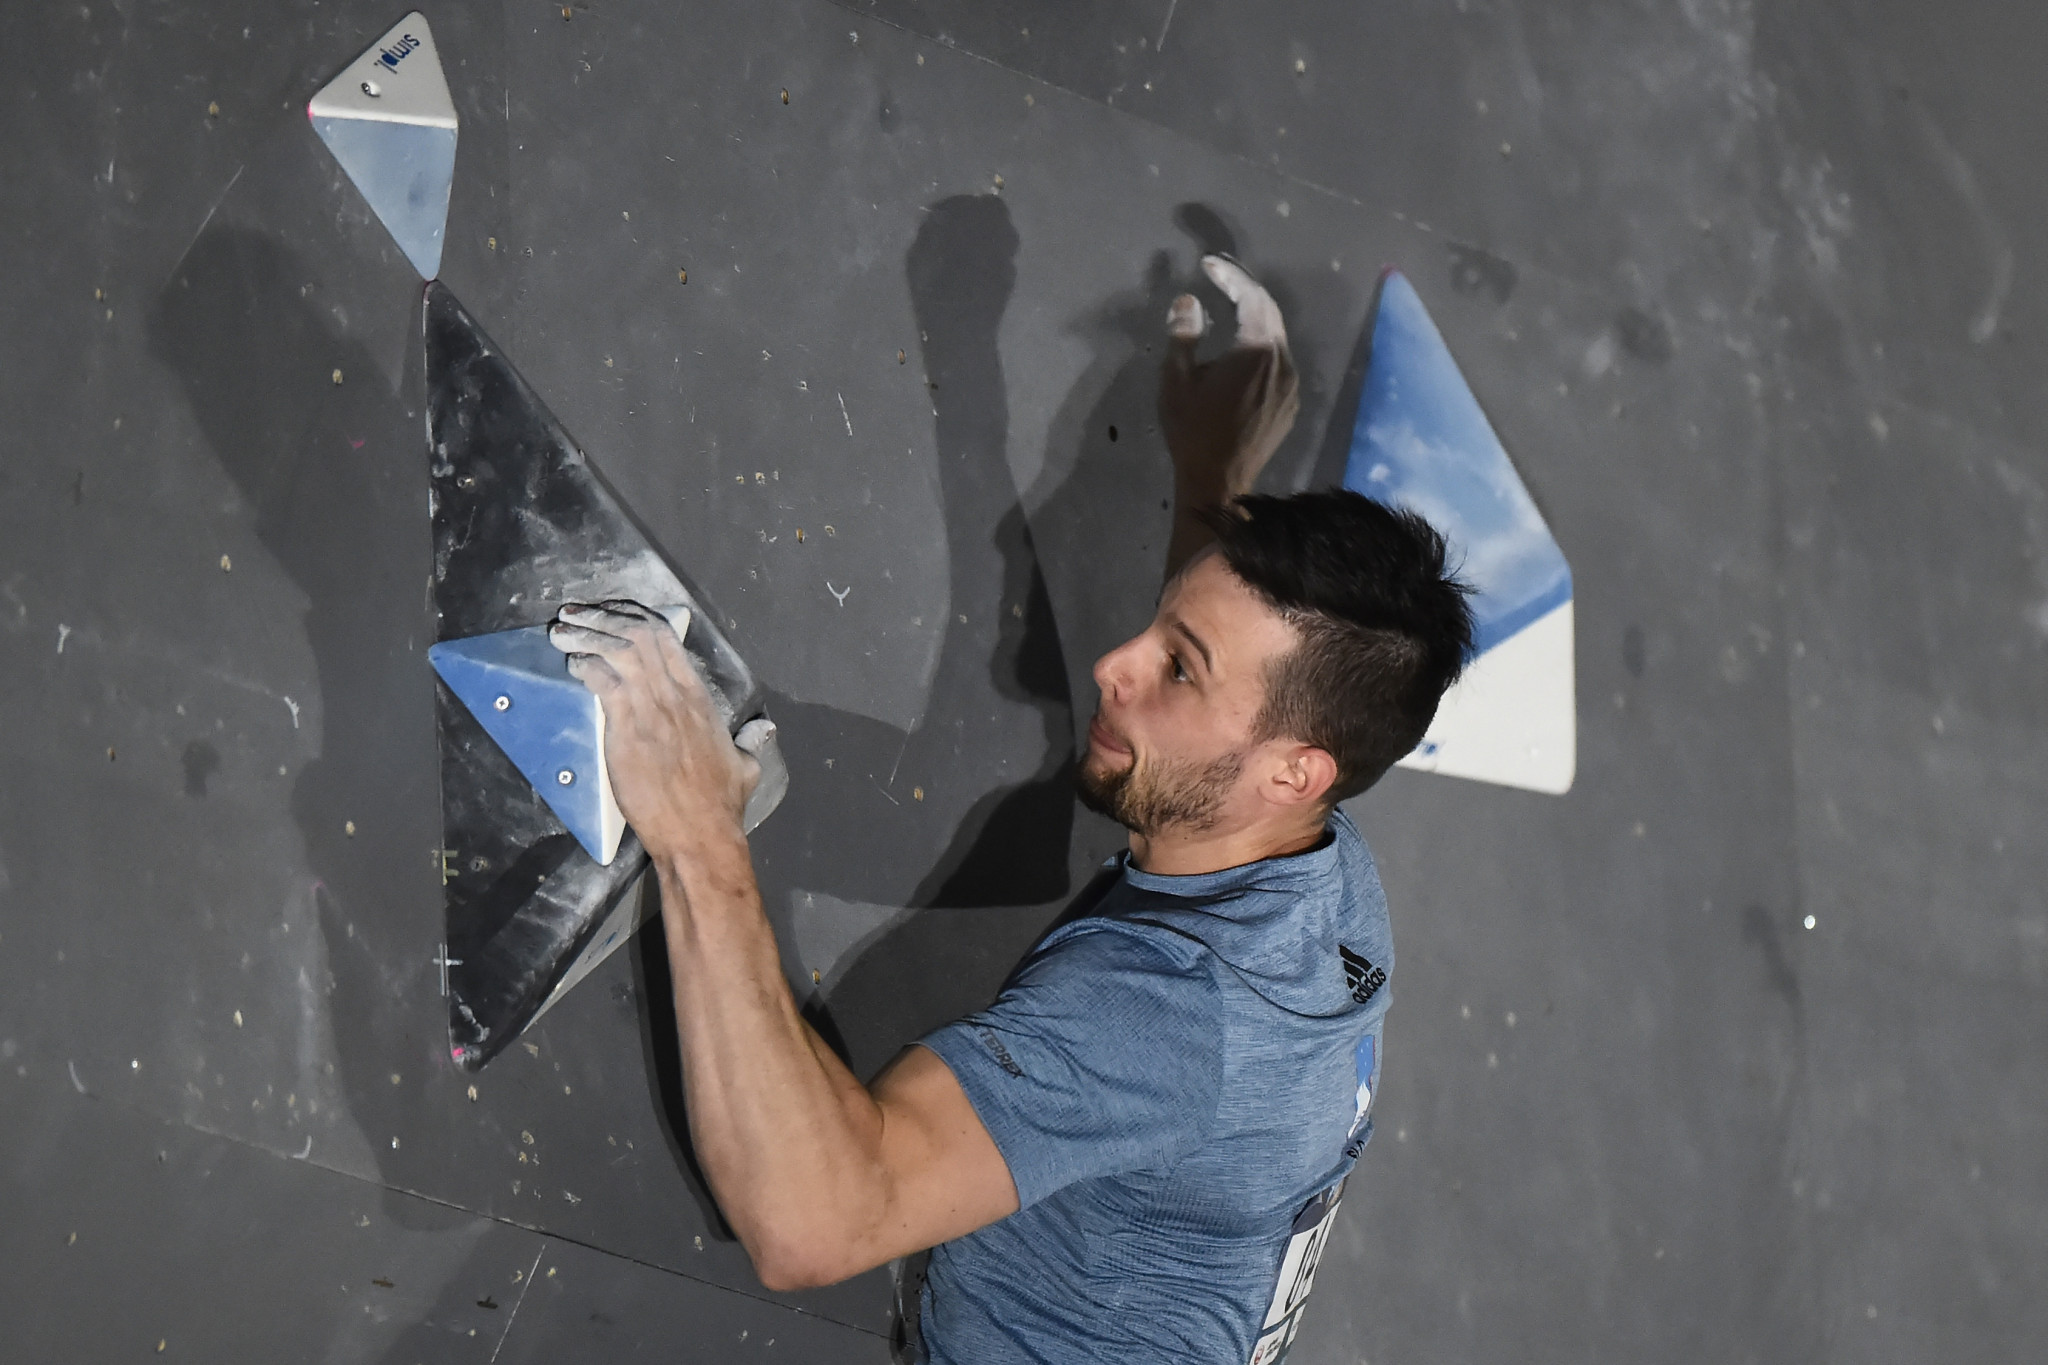 Vail to stage latest leg of IFSC World Cup circuit